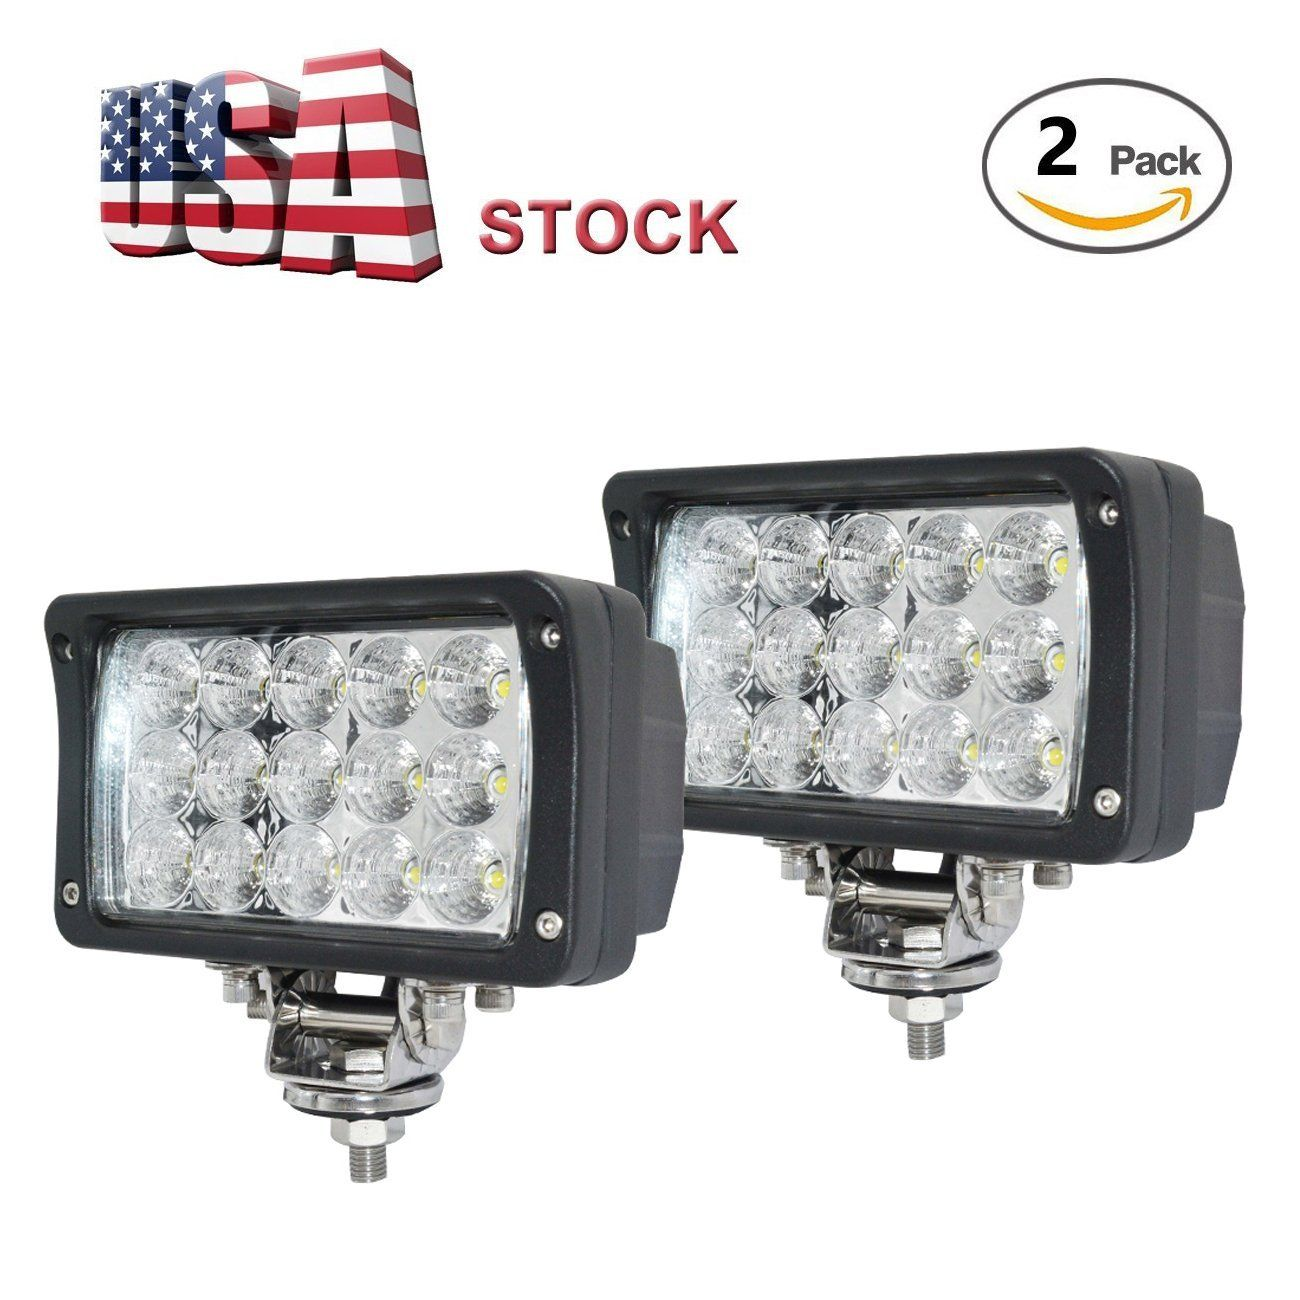 Led Work Lights For Truck 2 Pcs 6 Inch Led Light Bar 45w 12v Flood Driving Fog Light Flush Mount Brackets Led Work Light Led Light Bars Led Lights For Trucks